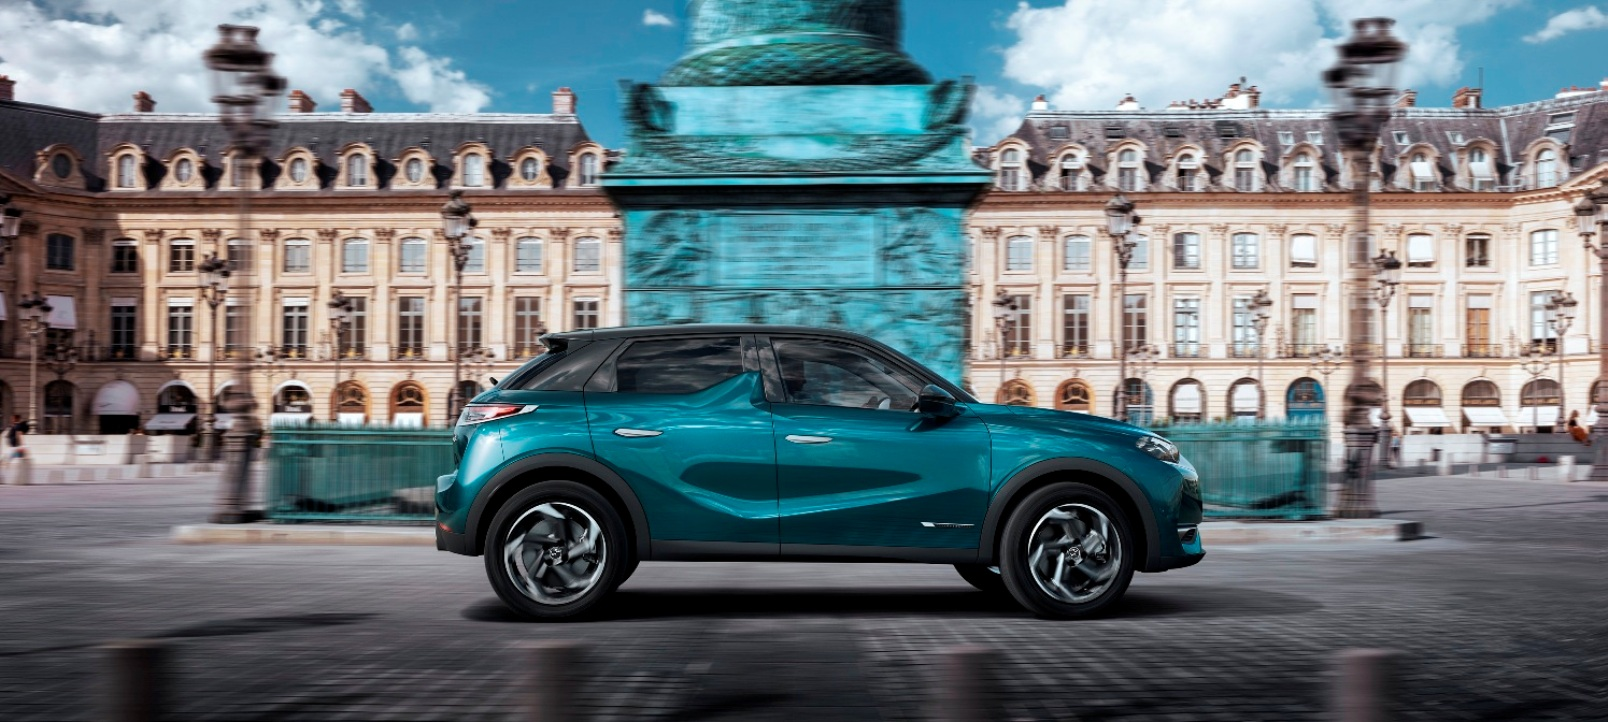 Ds 3 Crossback (1)